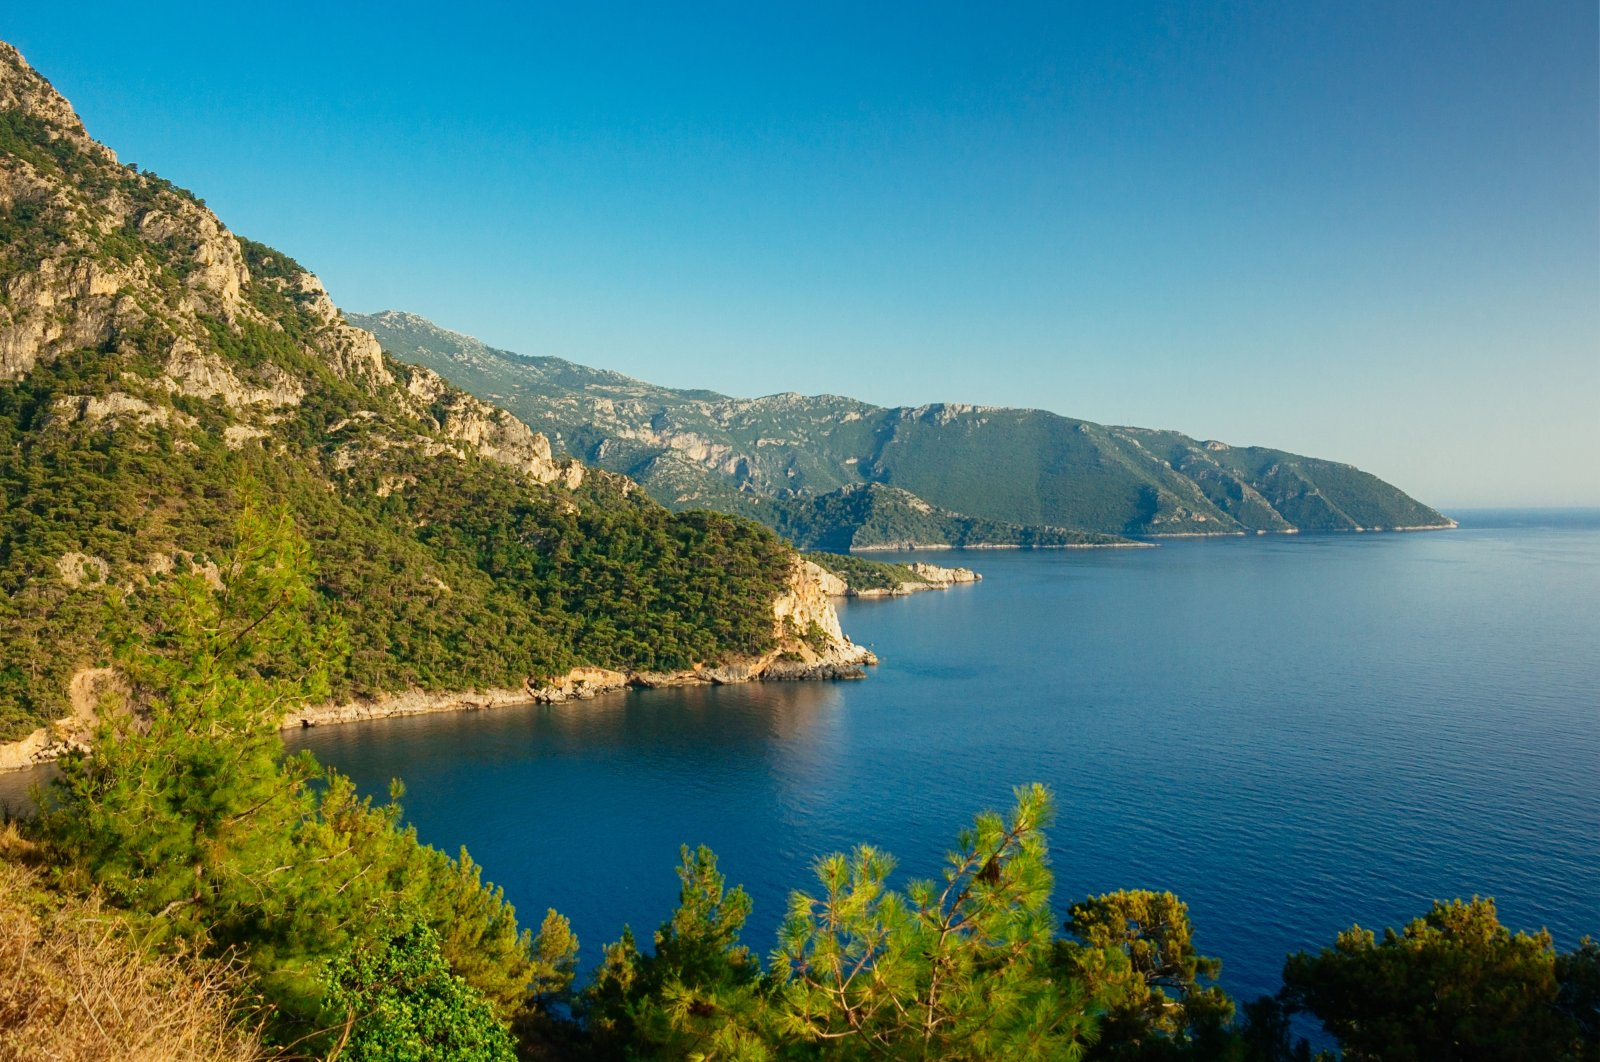 A view of the beautiful beach at Kabak Valley near Fethiye, Turkey. (Shutterstock Photo)